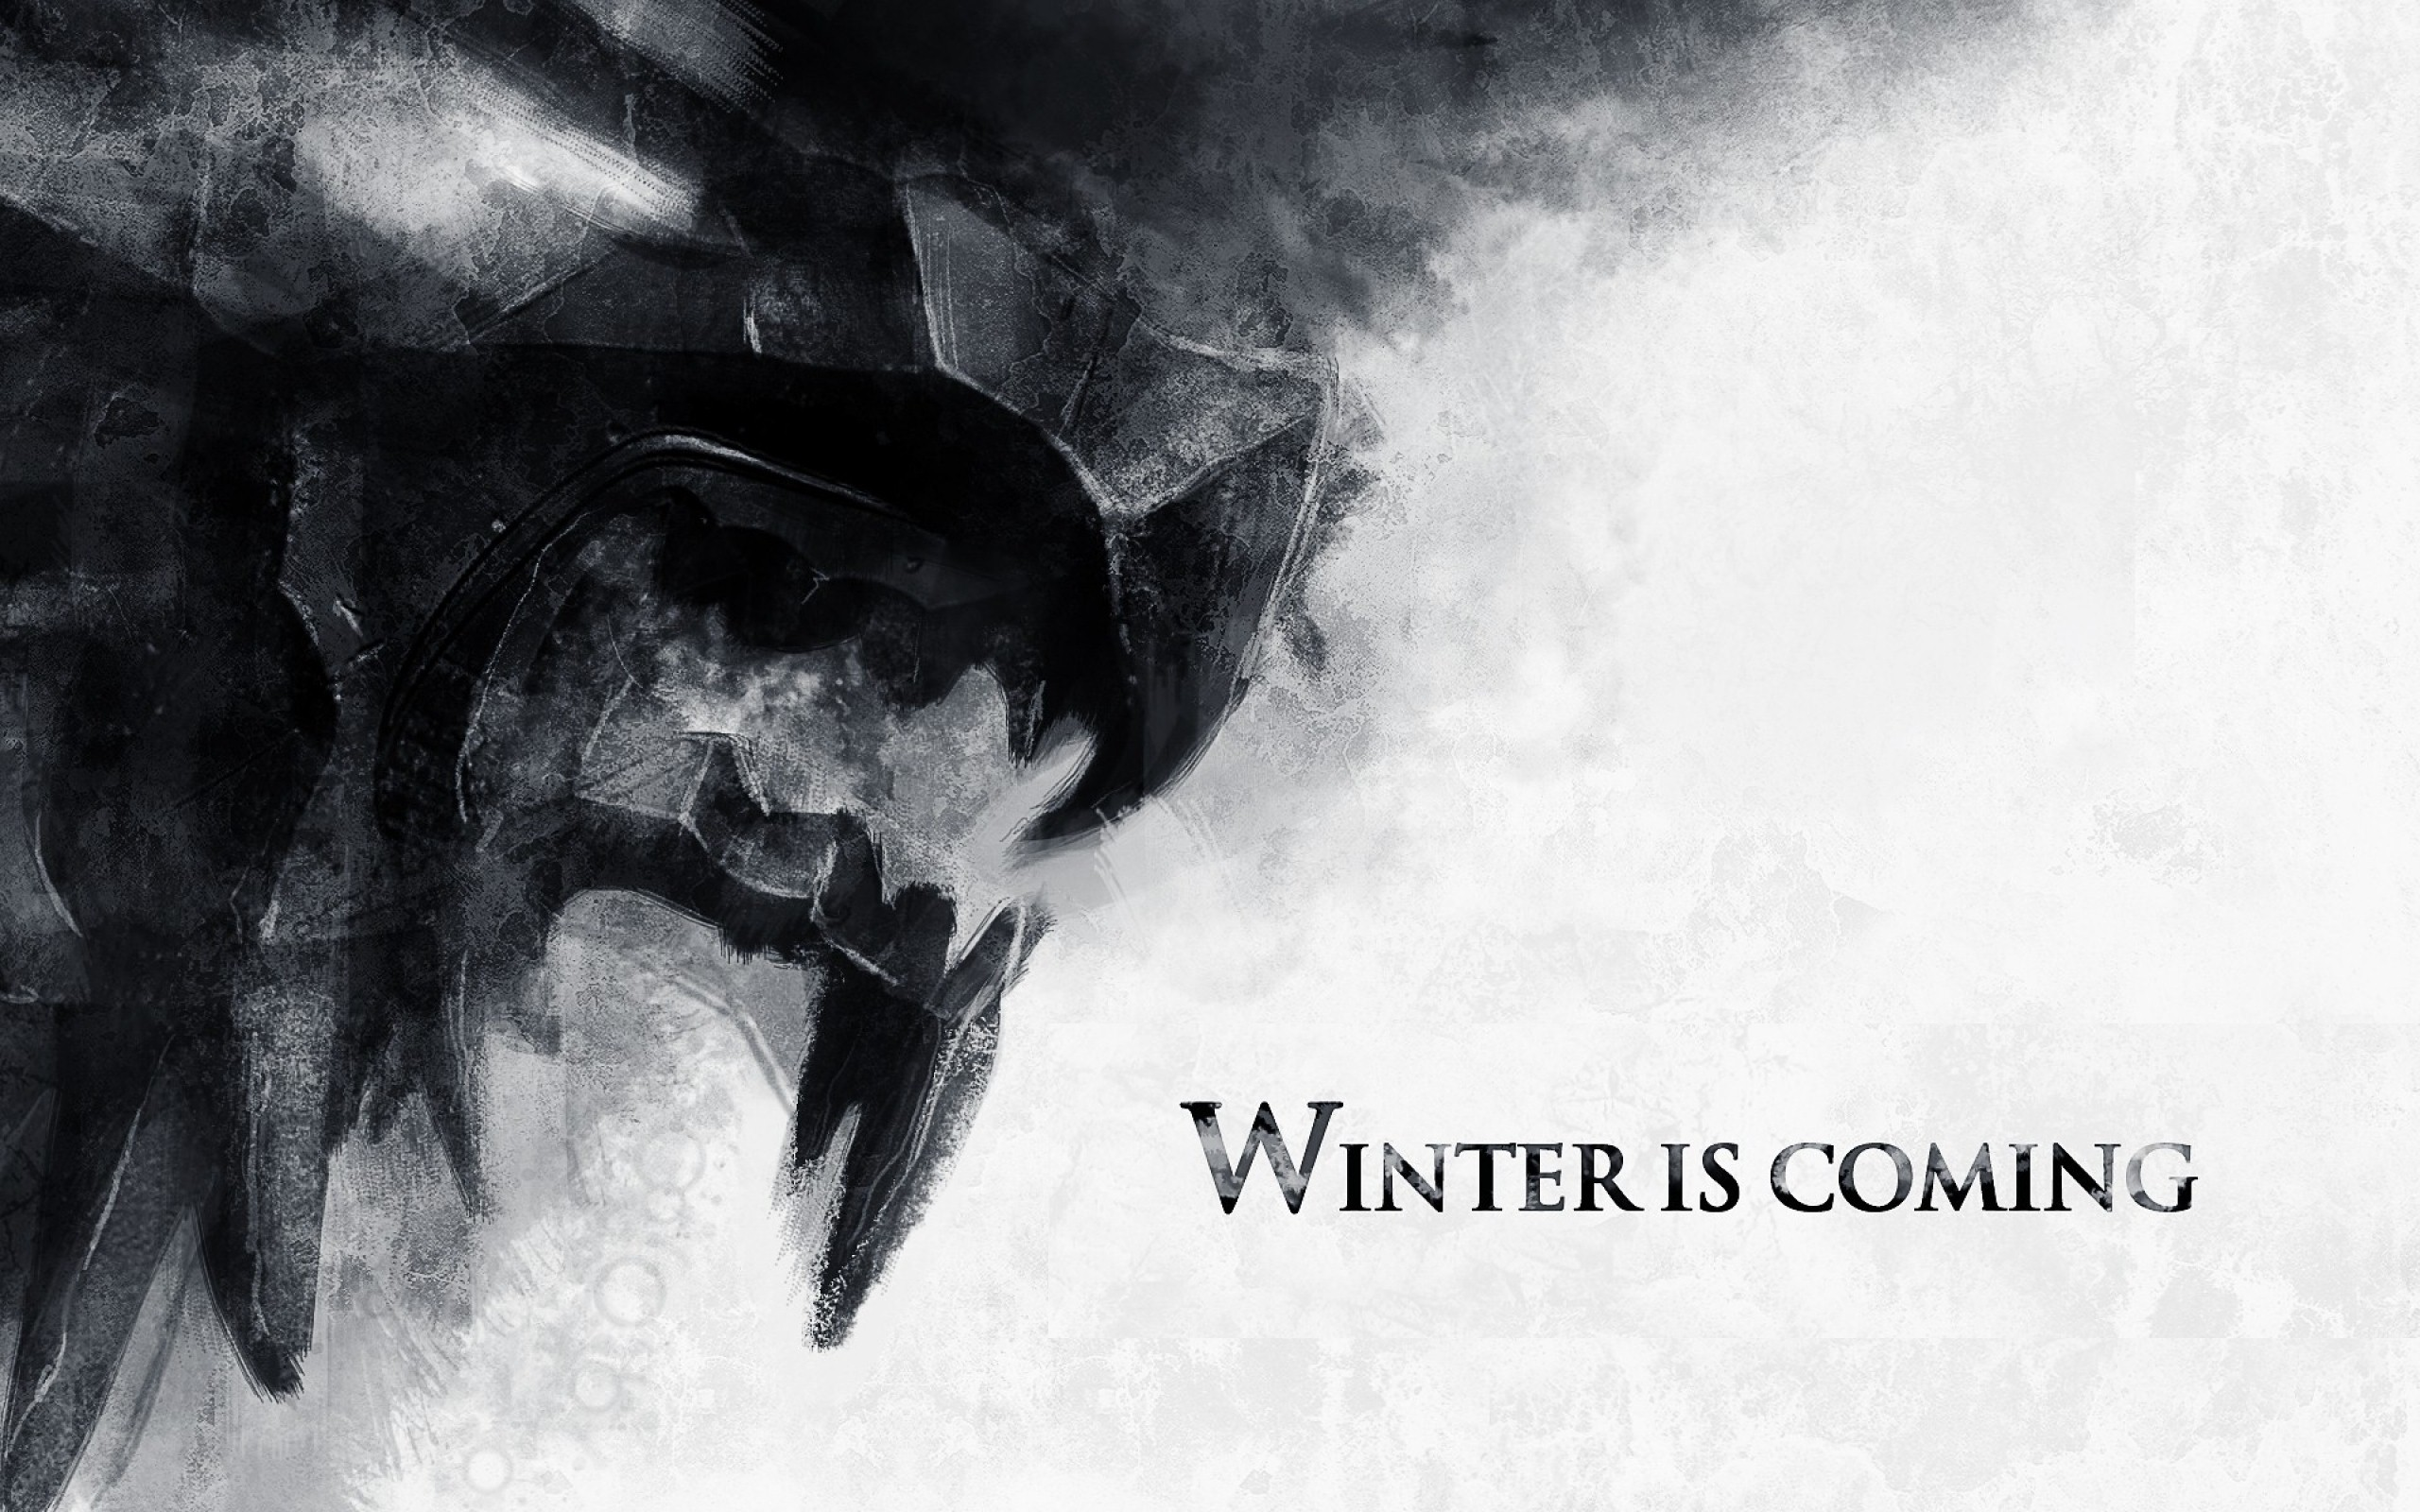 2560x1600 Download Free Game Of Thrones Wallpaper HD #61jo  Px 812.72 KB Game